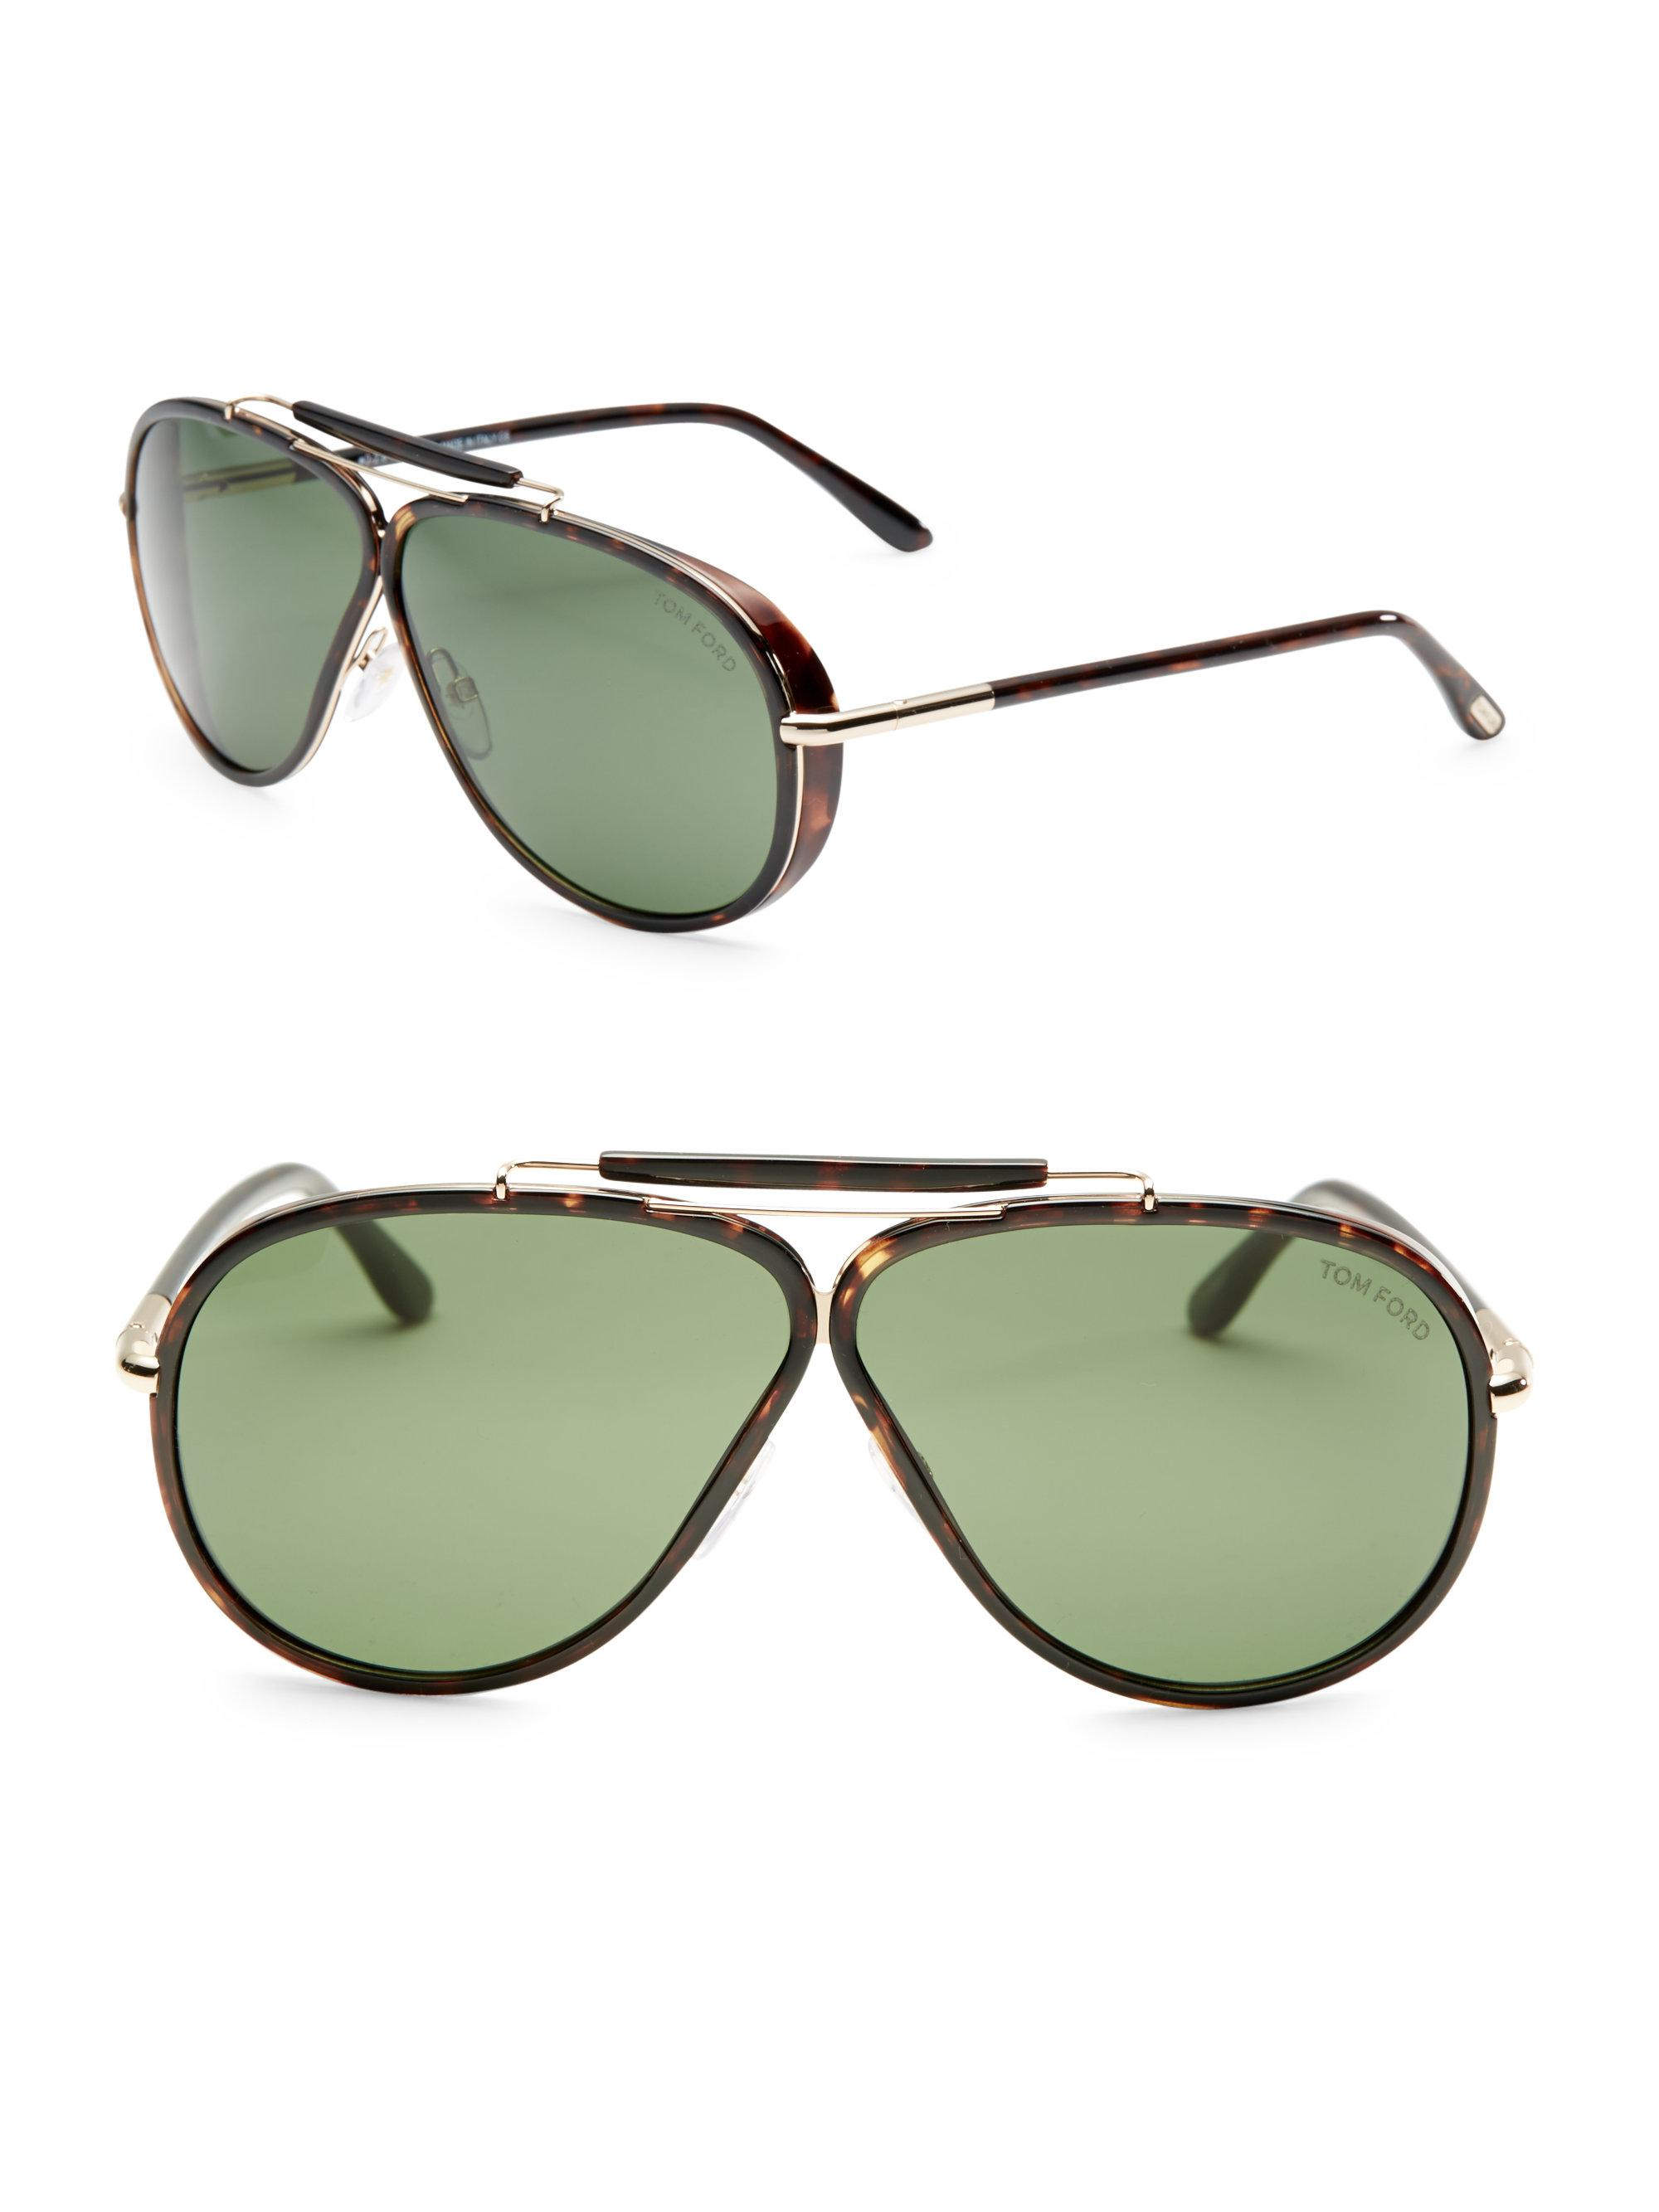 25a5103ff34 Lyst - Tom Ford Cedric 65mm Oversize Pilot Sunglasses for Men